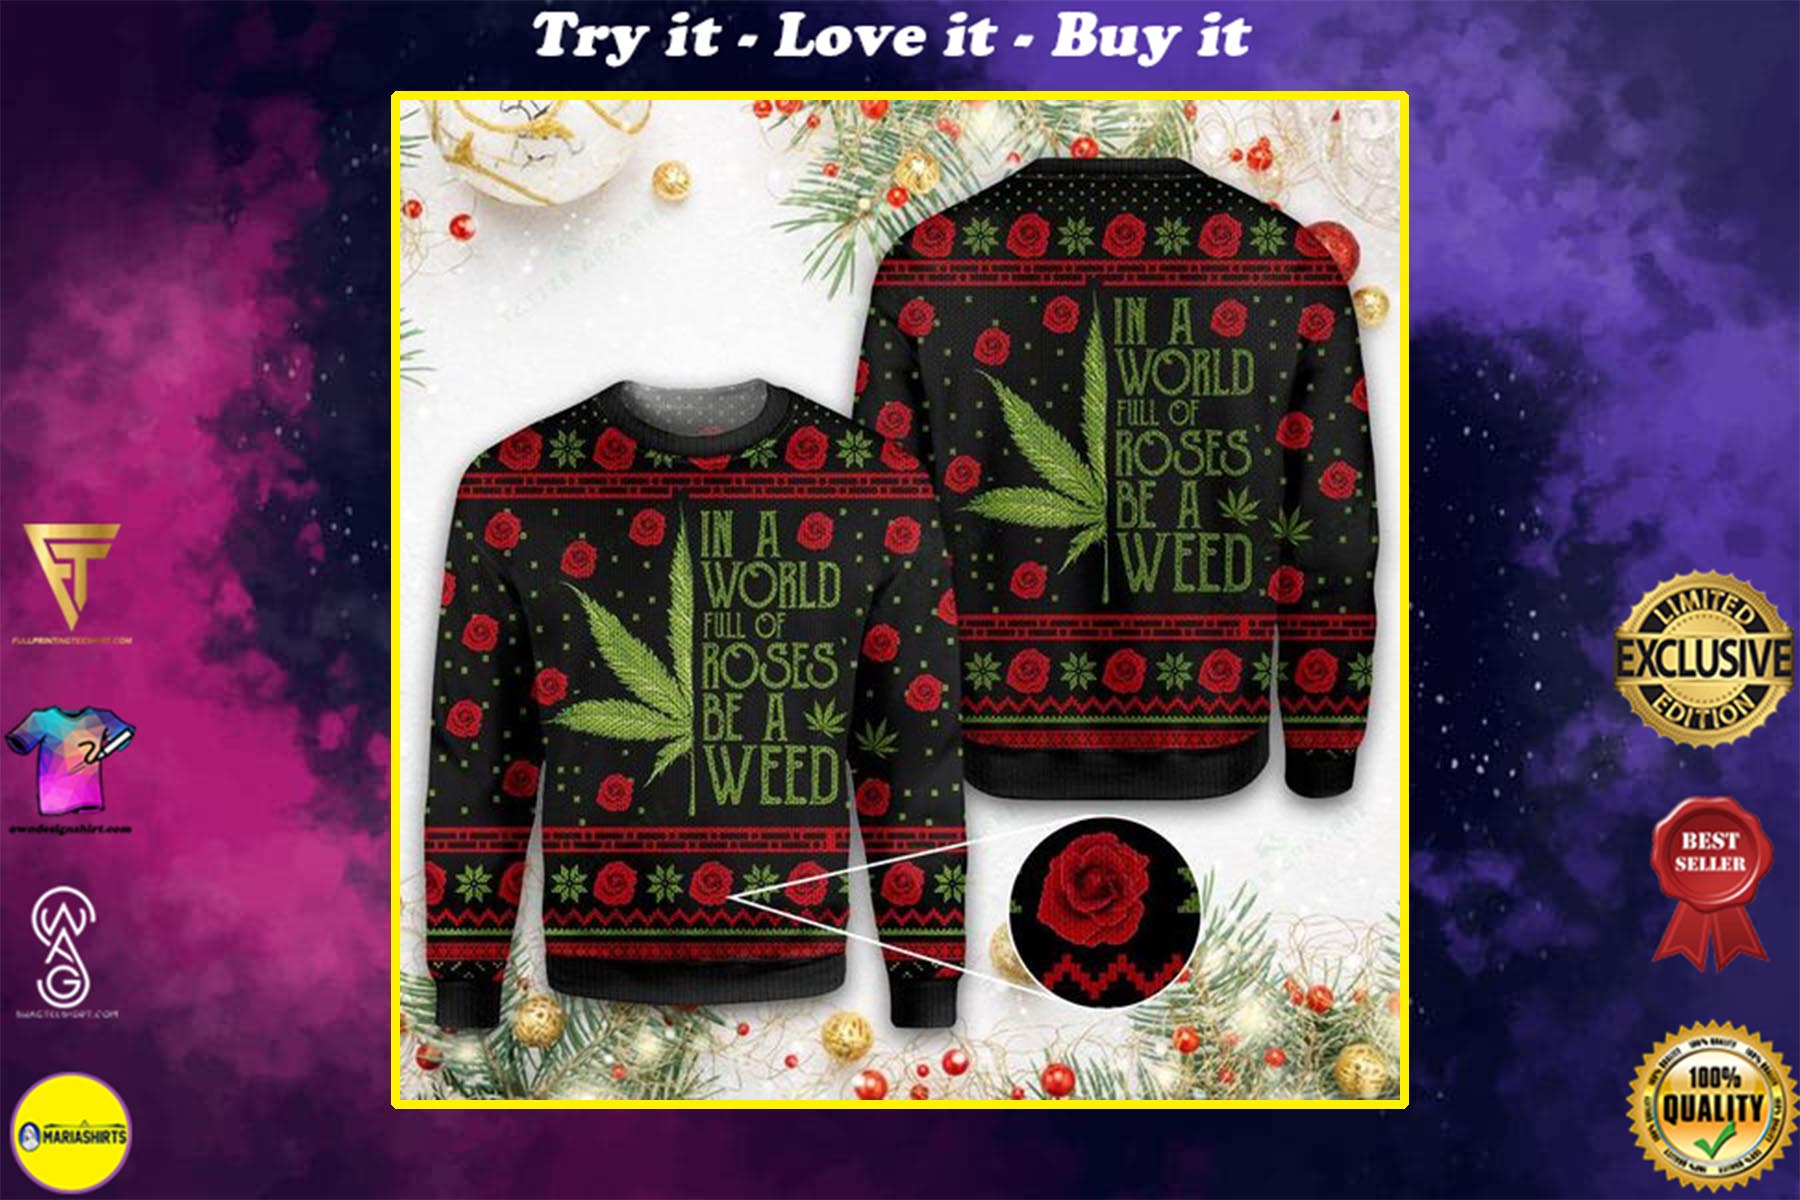 christmas in a world full of roses be a weed all over printed ugly christmas sweater